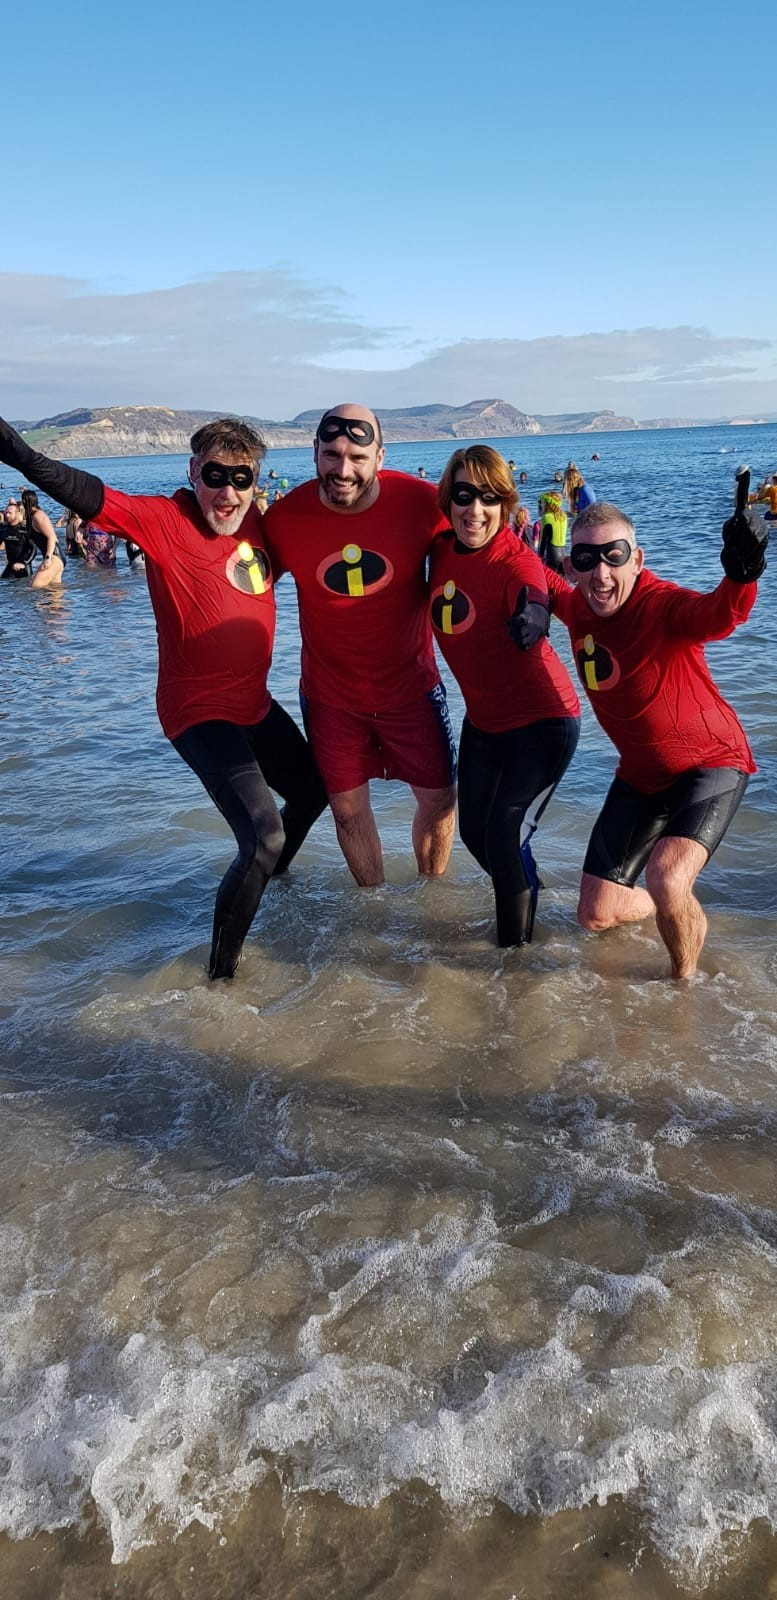 SUPERHEROES: Viv Duncan pictured with three of her fundraising friends, Dave Mann, Dave Oaten and Patrick Coll, at the Lyme Regis beach on New Year's Day